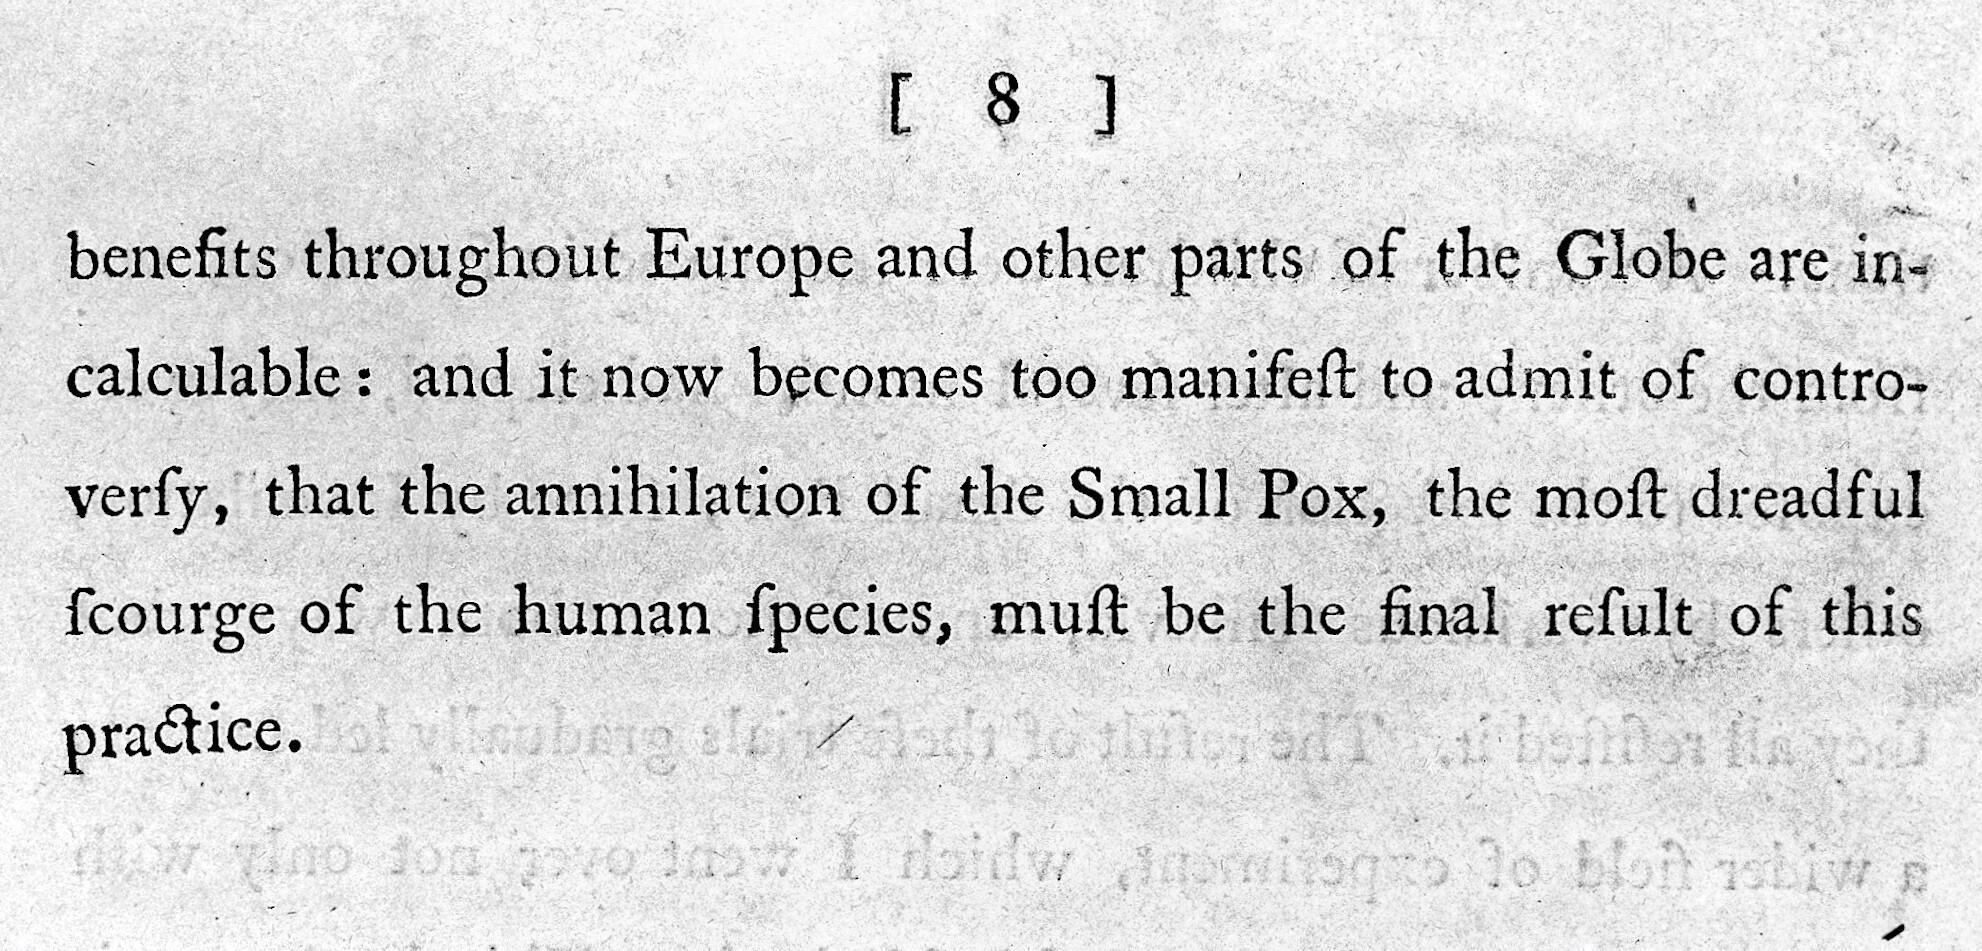 Prophesy of eradication of smallpox  | Wellcome Collection